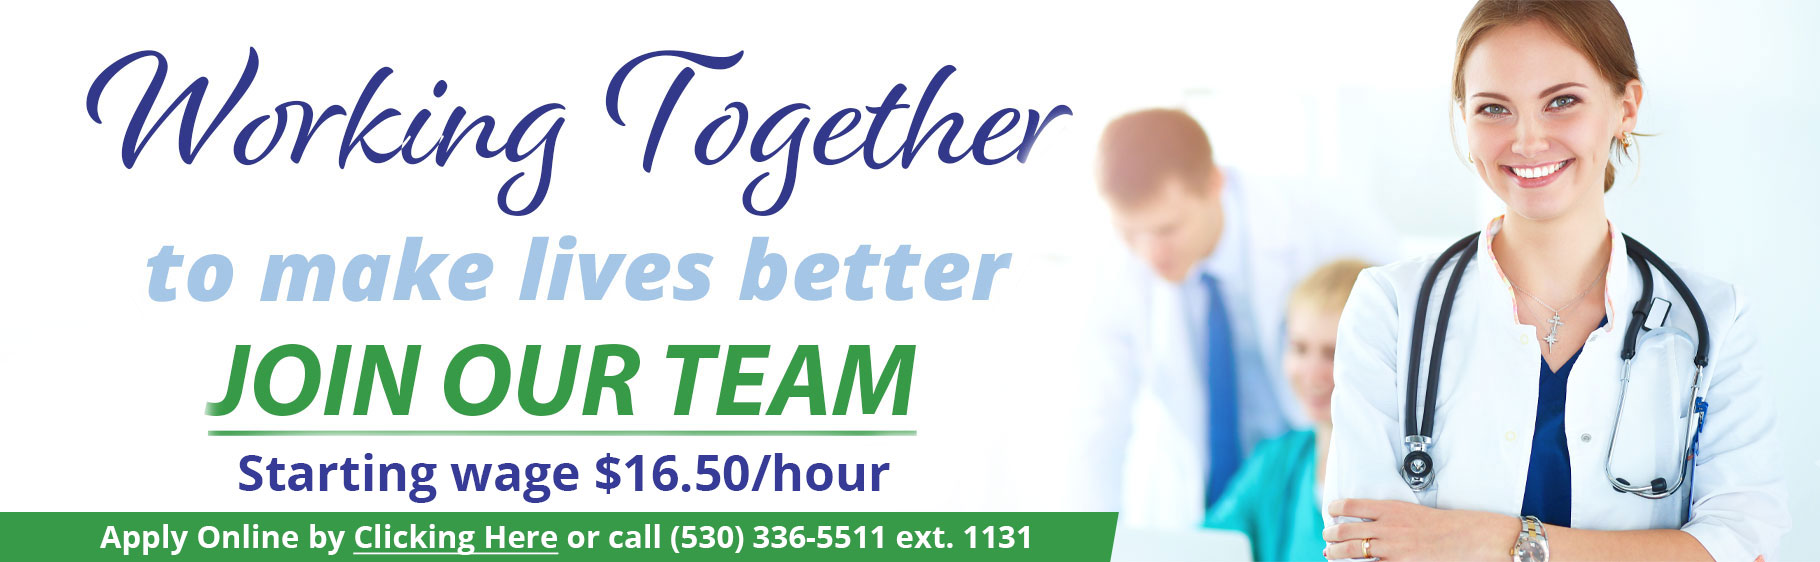 Banner picture of a smiling female Physician. She is folding her arms and has a stethoscope around her neck. There is a male Physician and female Nurse in the background looking down at a laptop.  Banner says: Working Together to make lives better JOIN OUR TEAM